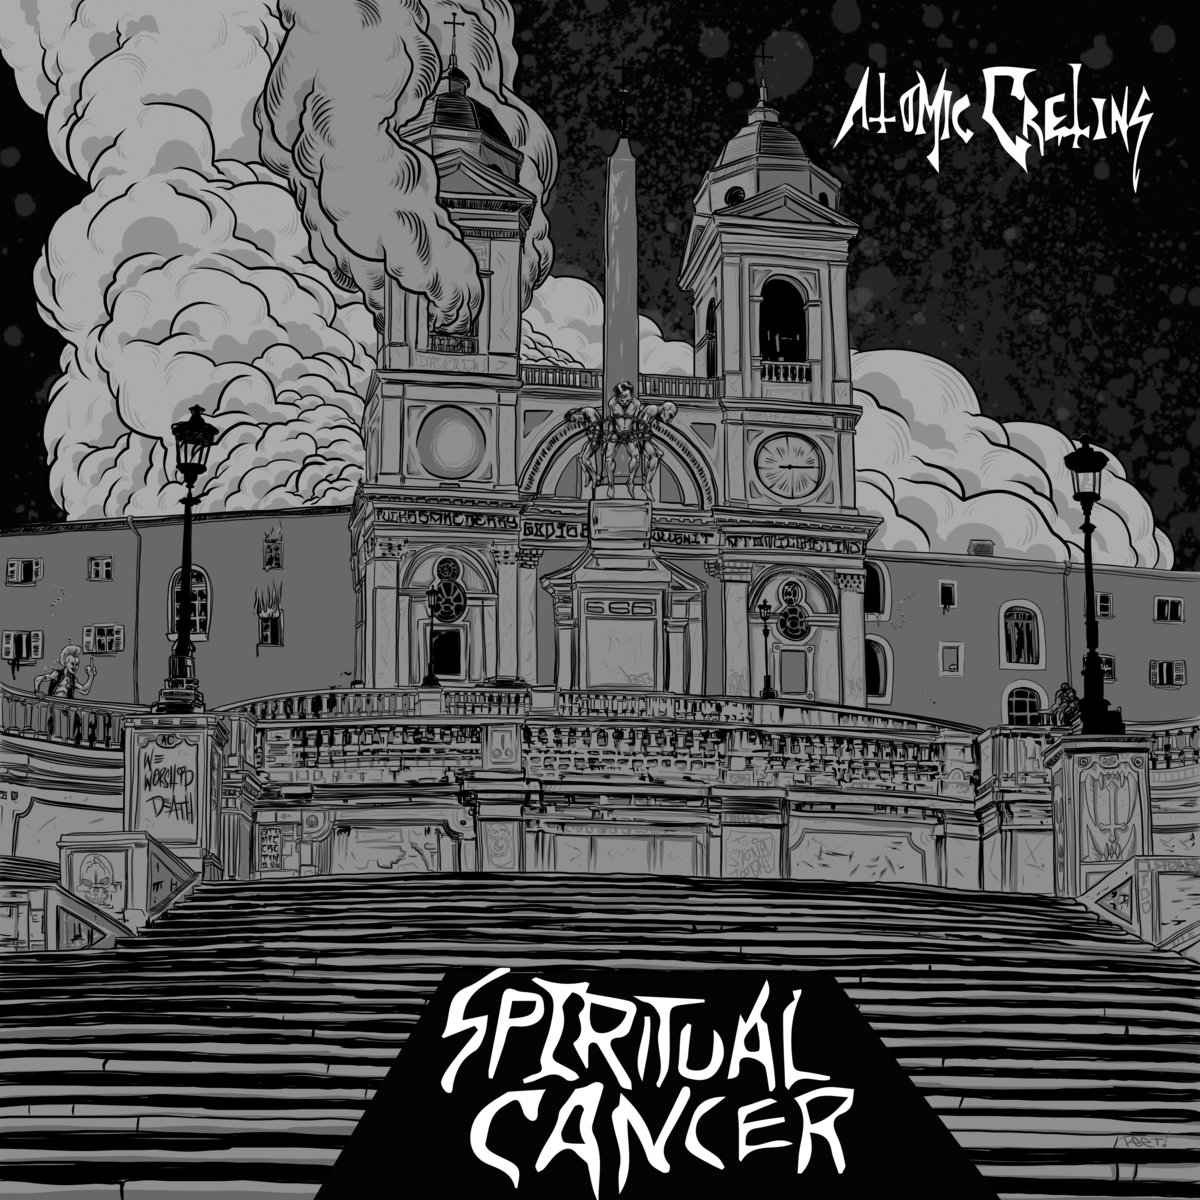 atomic cretins – spiritual cancer [ep]